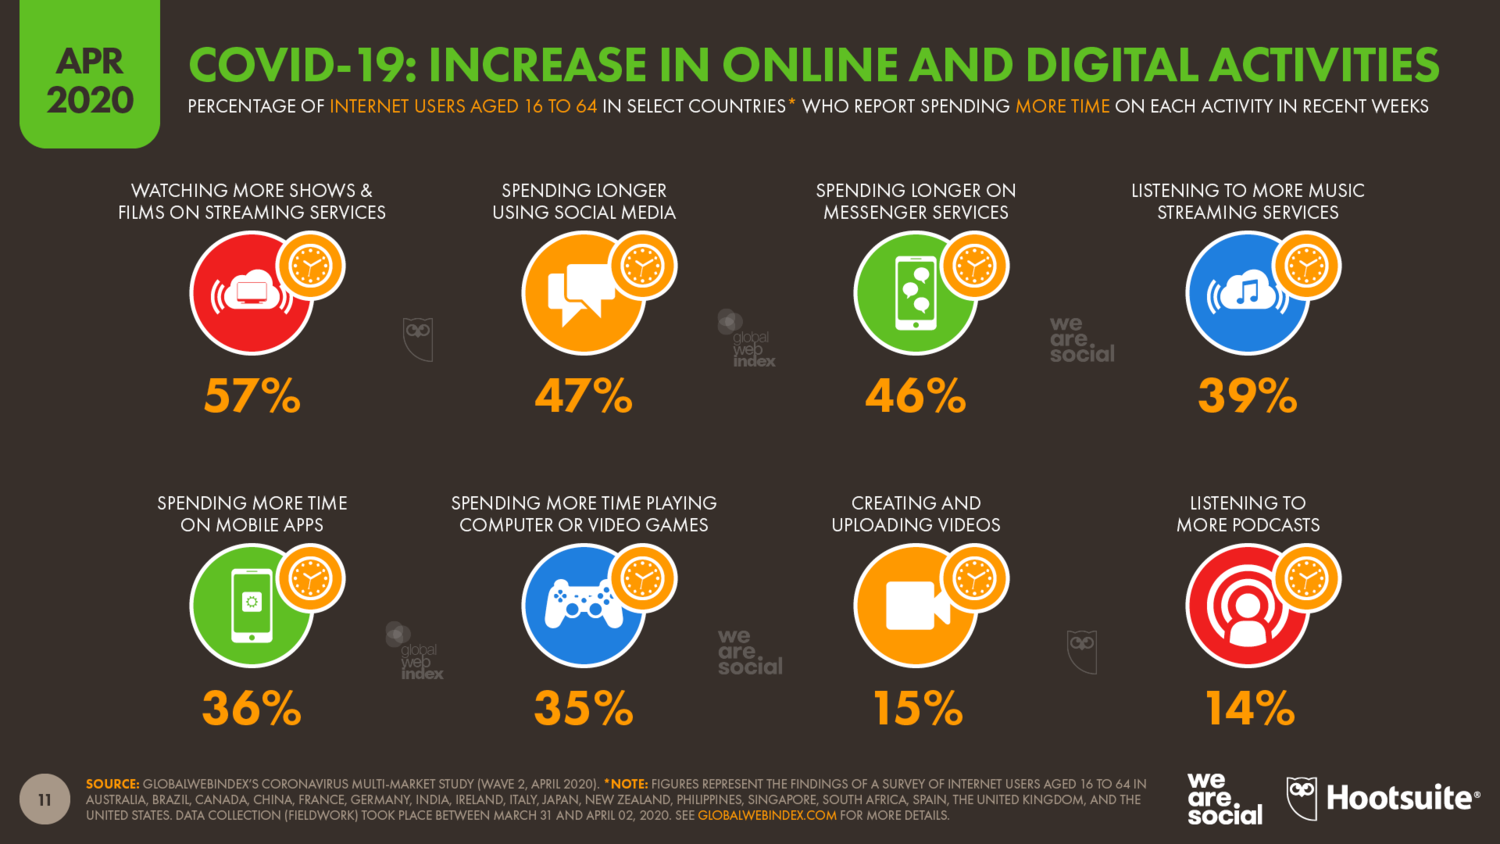 Stats showing how an increase in online and digital activities has occurred during COVID-19